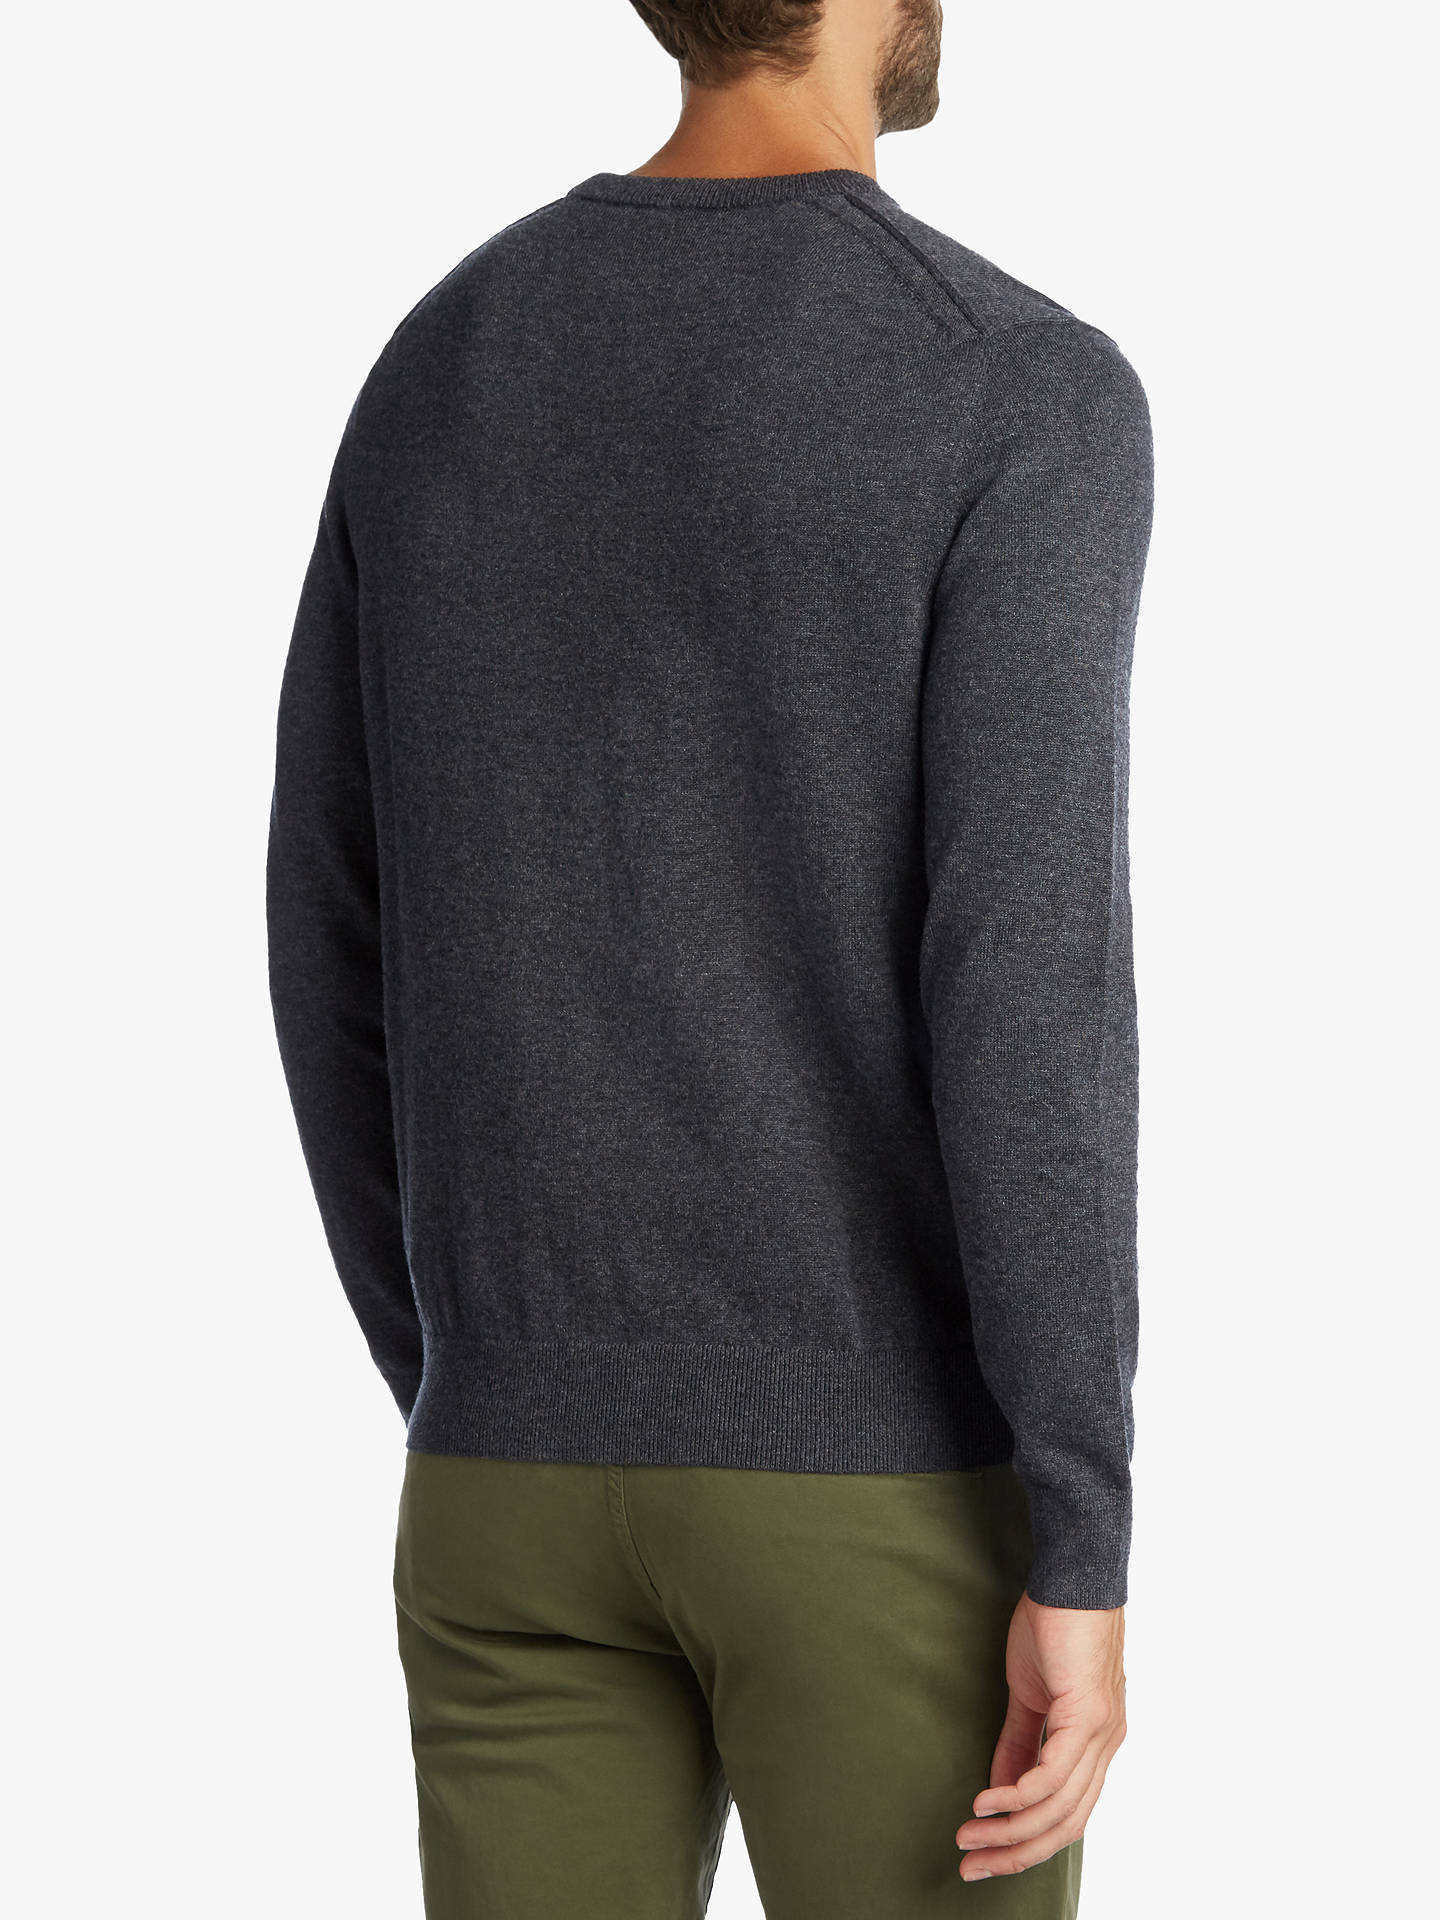 BuyBOSS Albonok Long Sleeve Jumper, Dark Grey, M Online at johnlewis.com